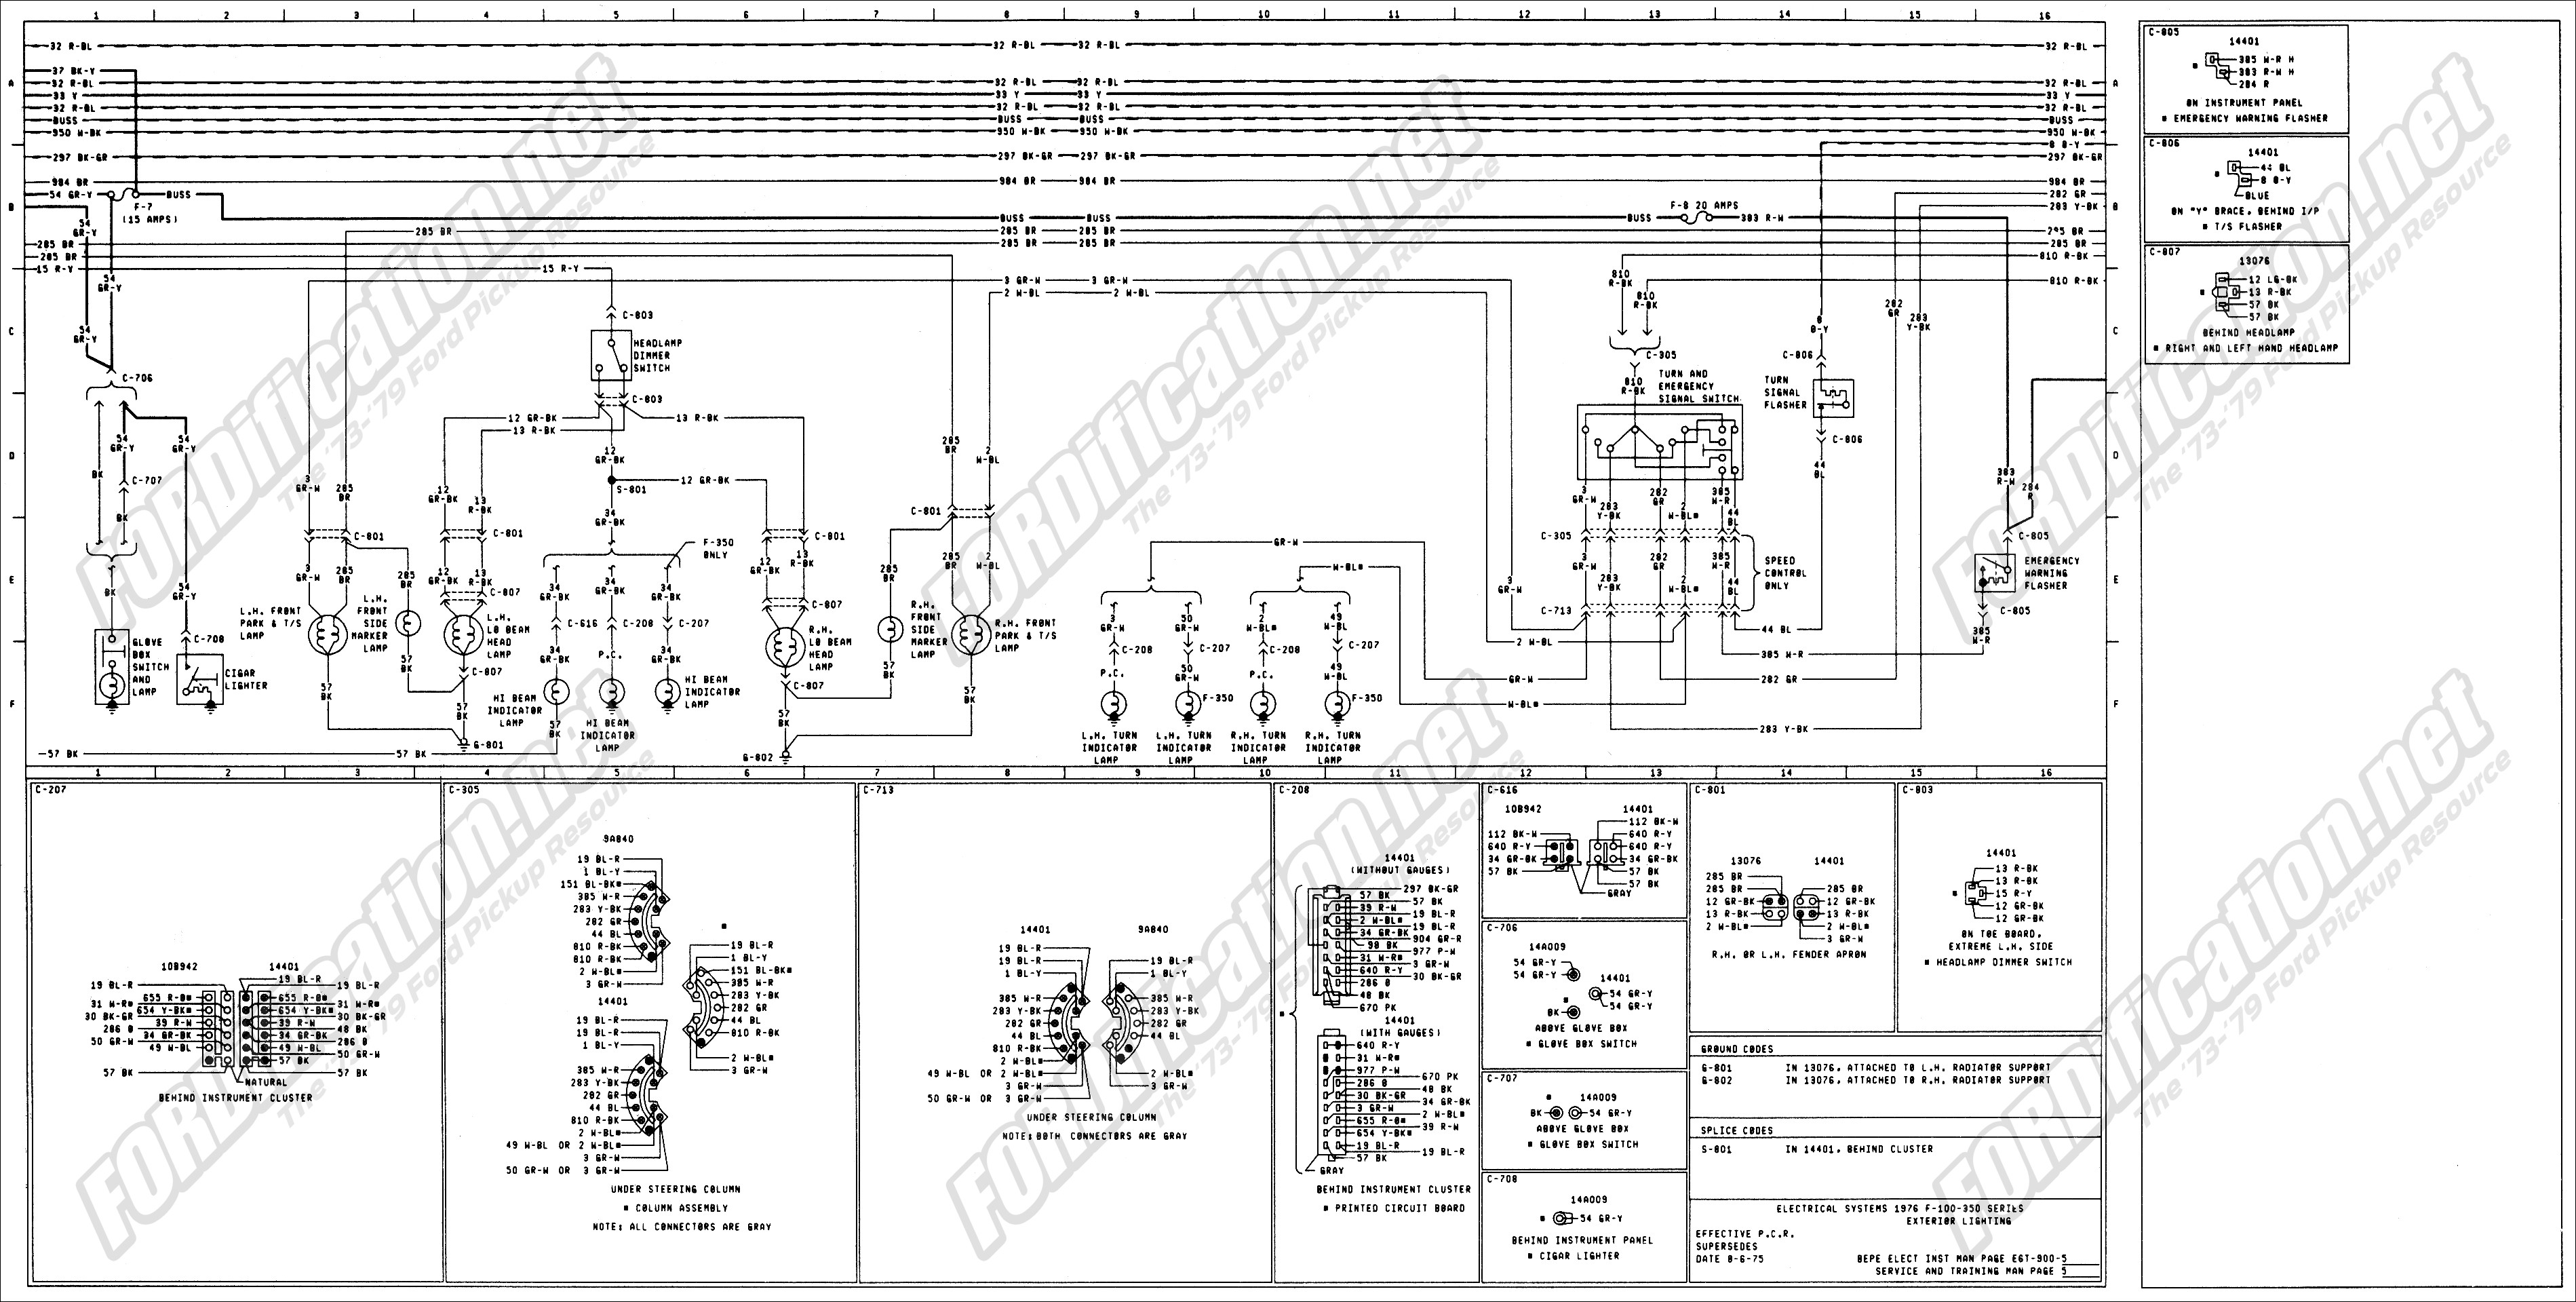 Tail Light Wiring Diagram ford F150 2000 ford F 250 Wiring Diagram ...